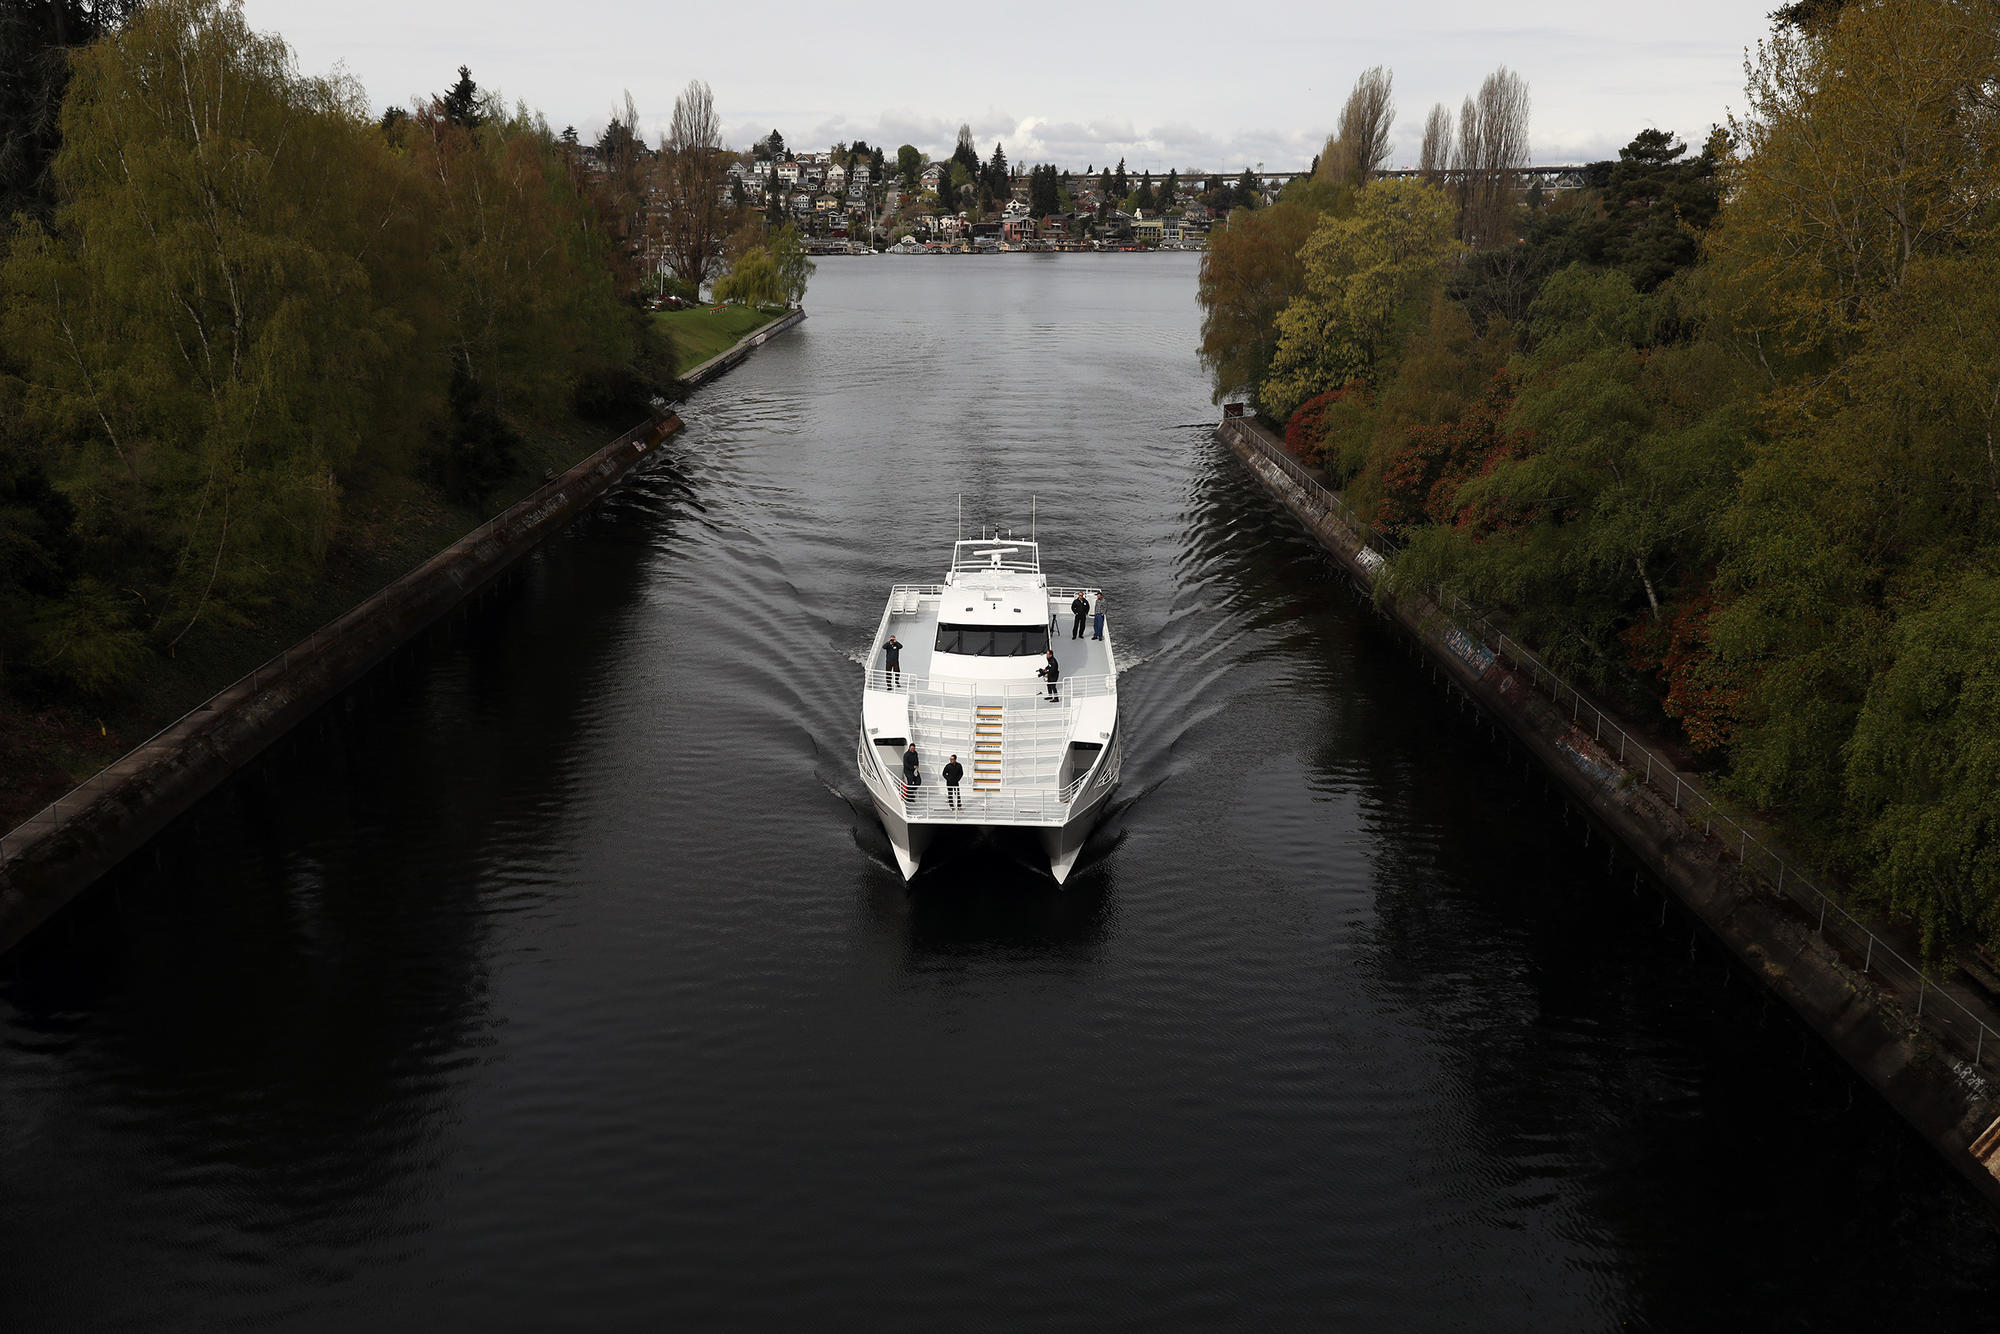 The Saratoga is seen passing through the Montlake Cut from the Montlake Bridge during a water taxi test ride from Lake Union Park at South Lake Union in Seattle to Southport on Lake Washington in Renton, during the morning of April 18.